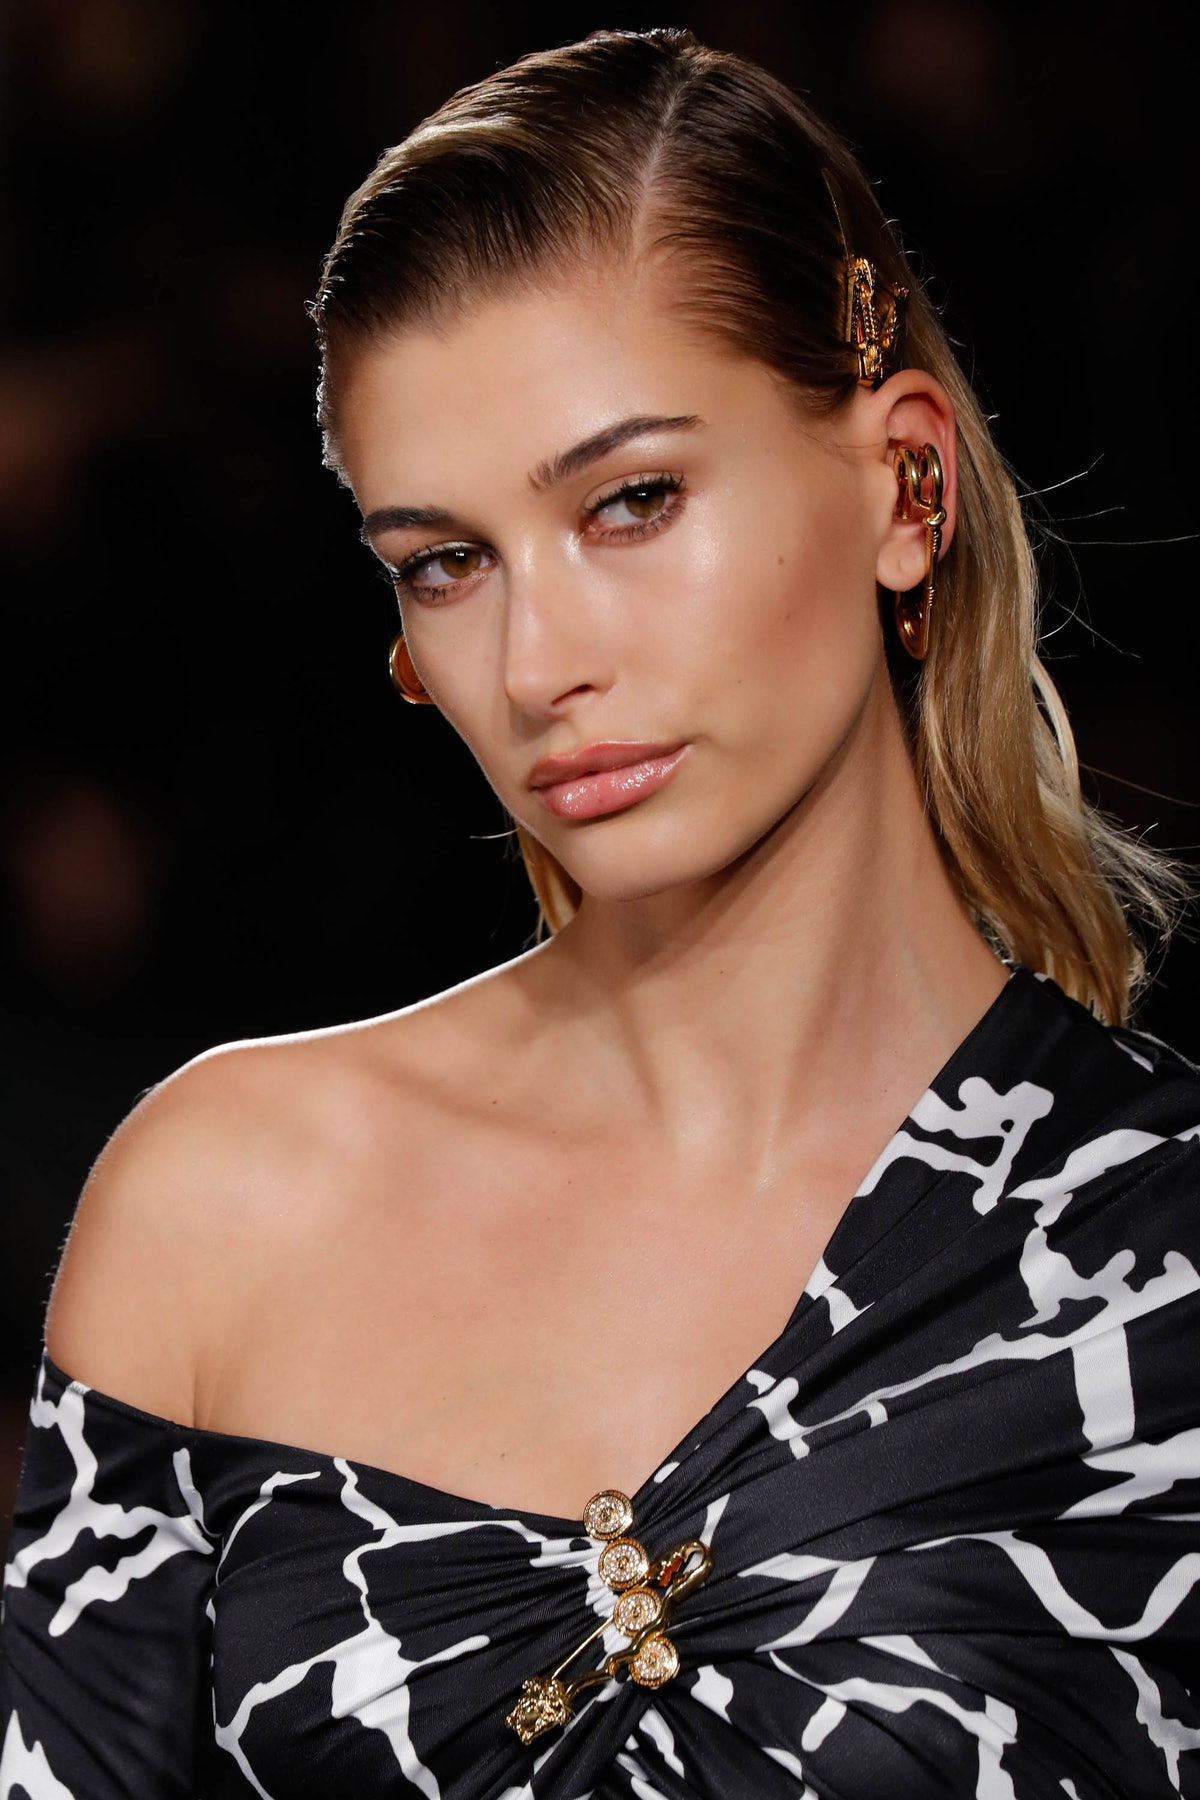 Fans Think Hailey Baldwin Is Pregnant After Justin Bieber's Instagram, But The Evidence Is Hazy